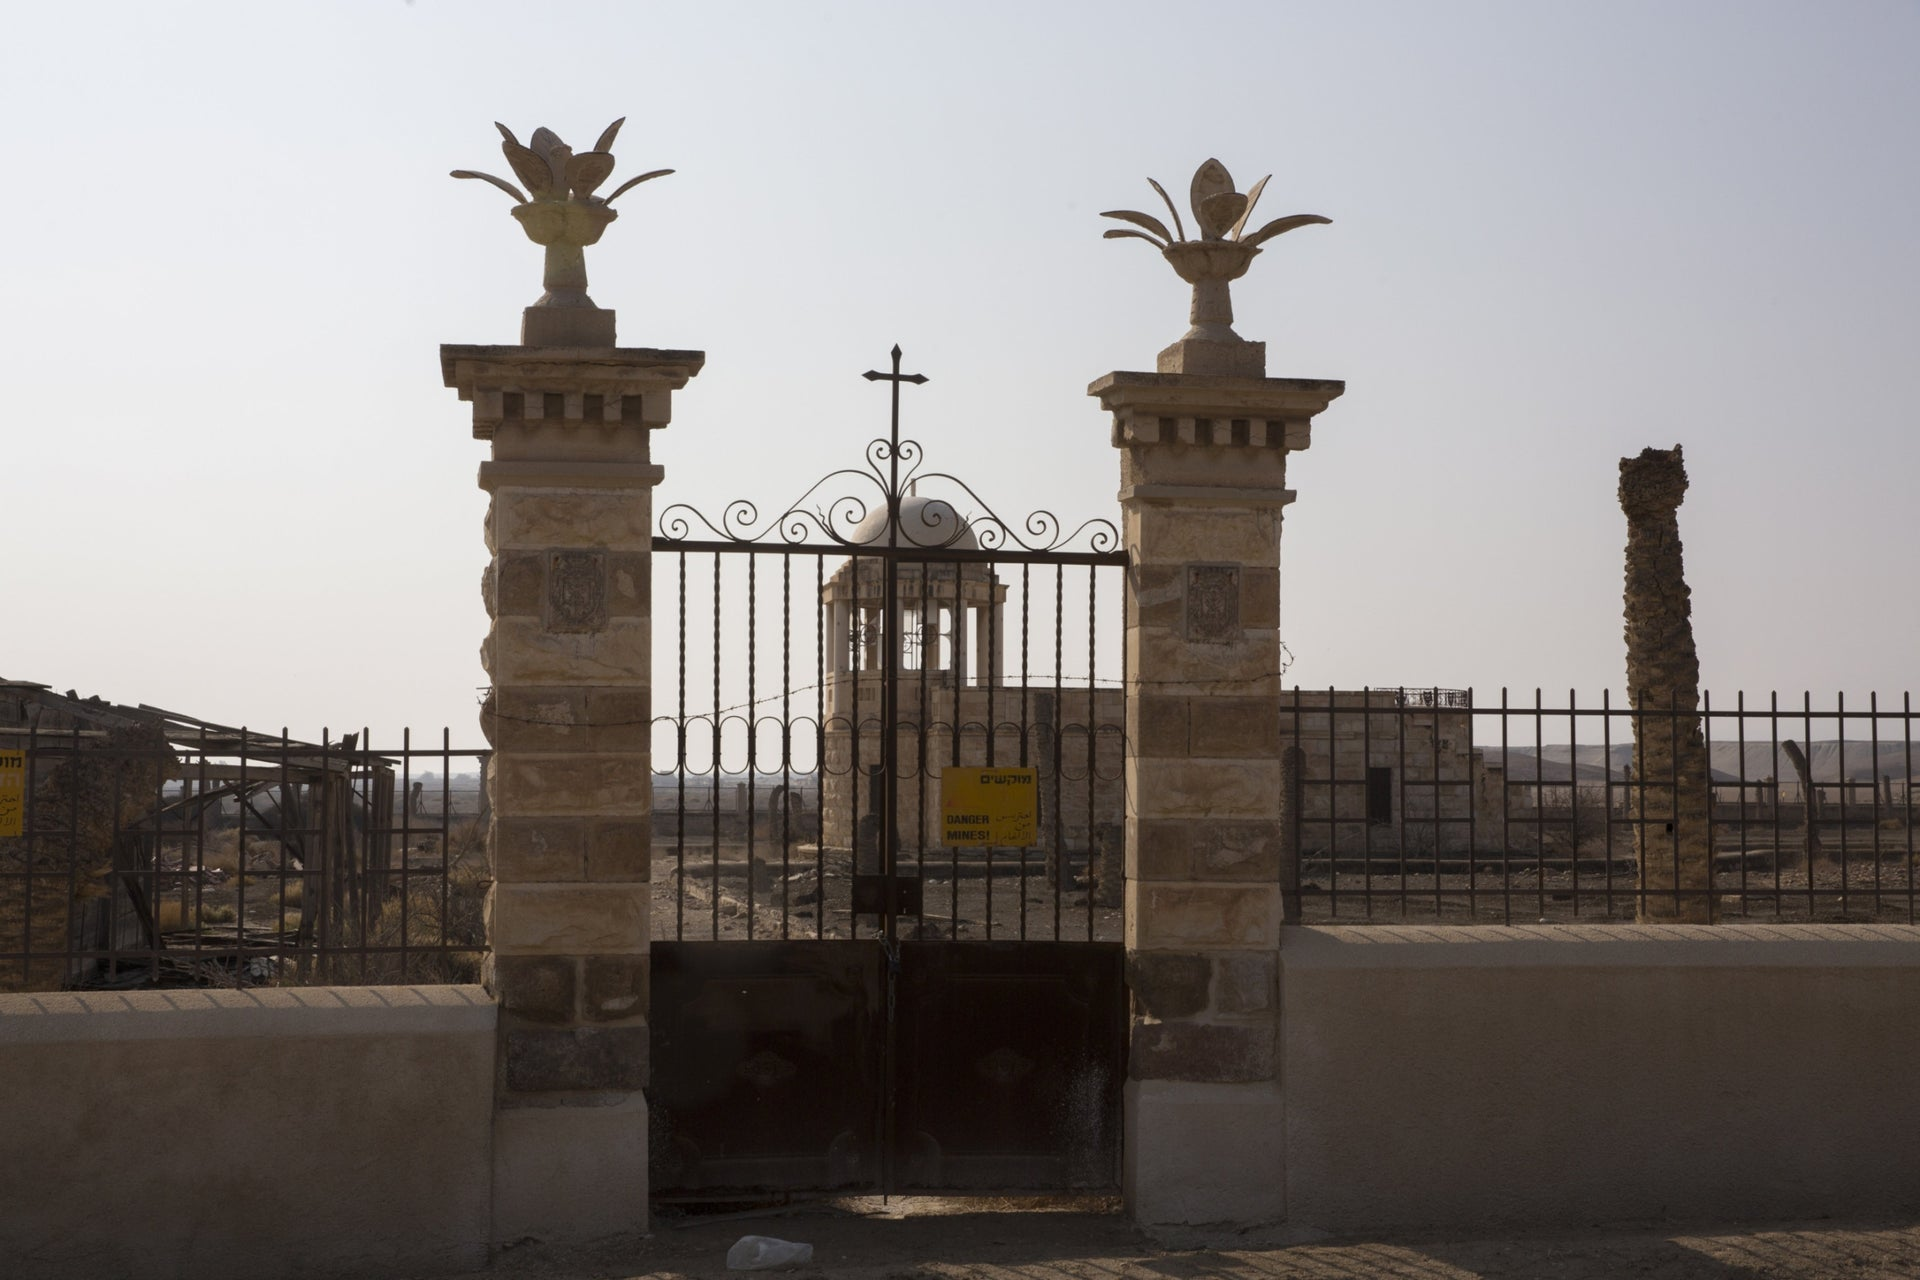 A locked entrance to one of the monasteries at Qasr el-Yahud.